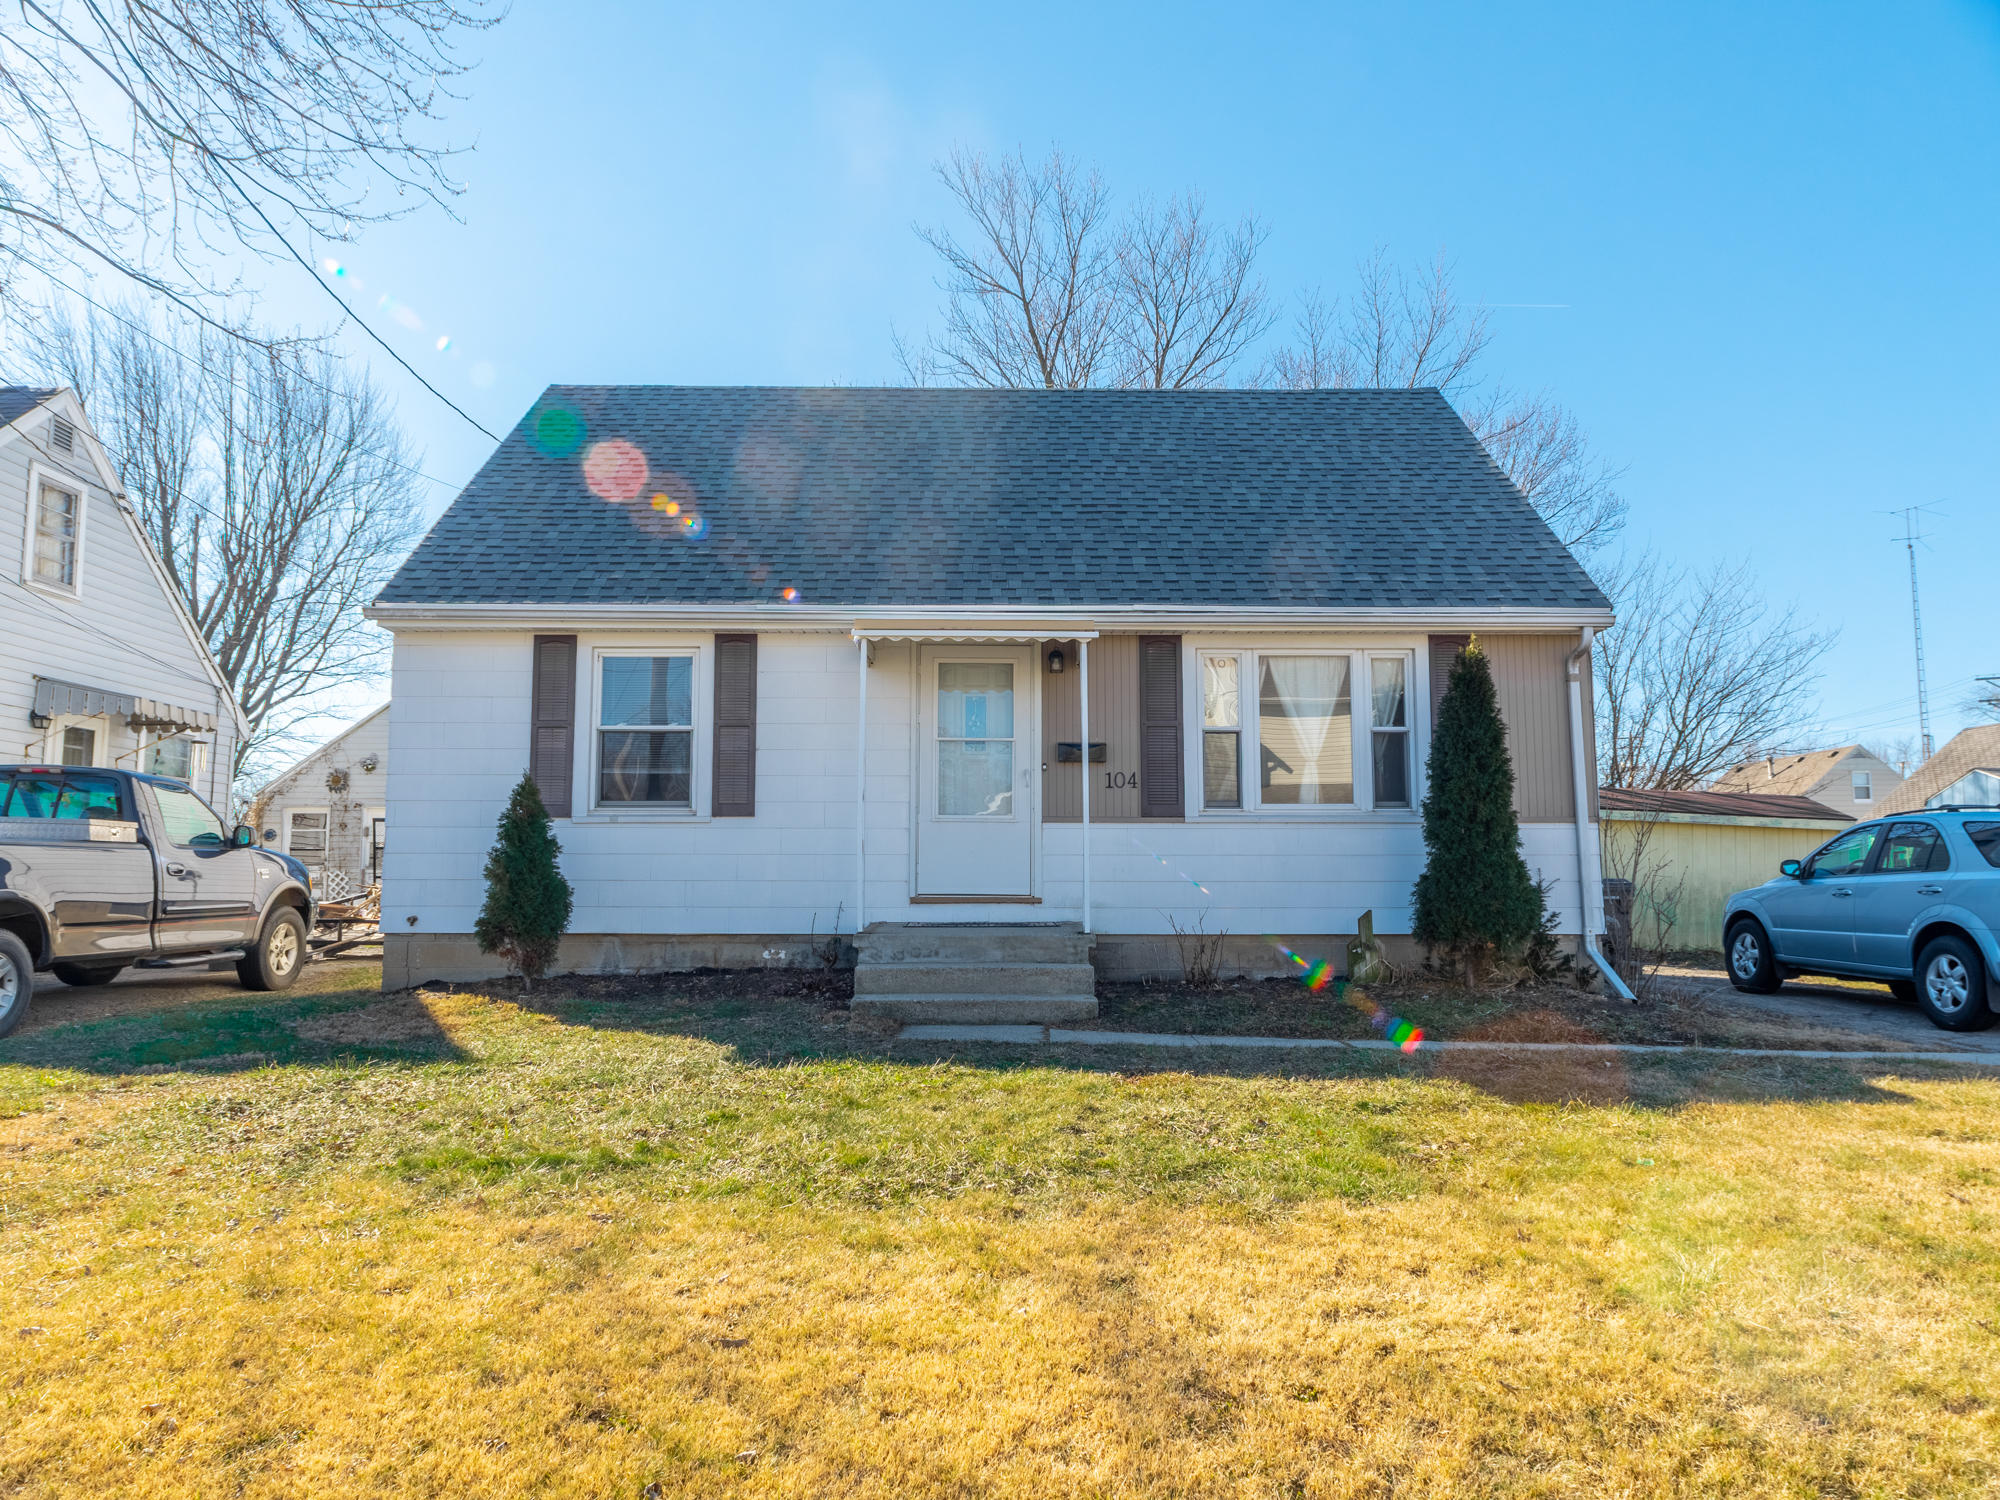 104 E Edwards Street Property Photo - Lima, OH real estate listing